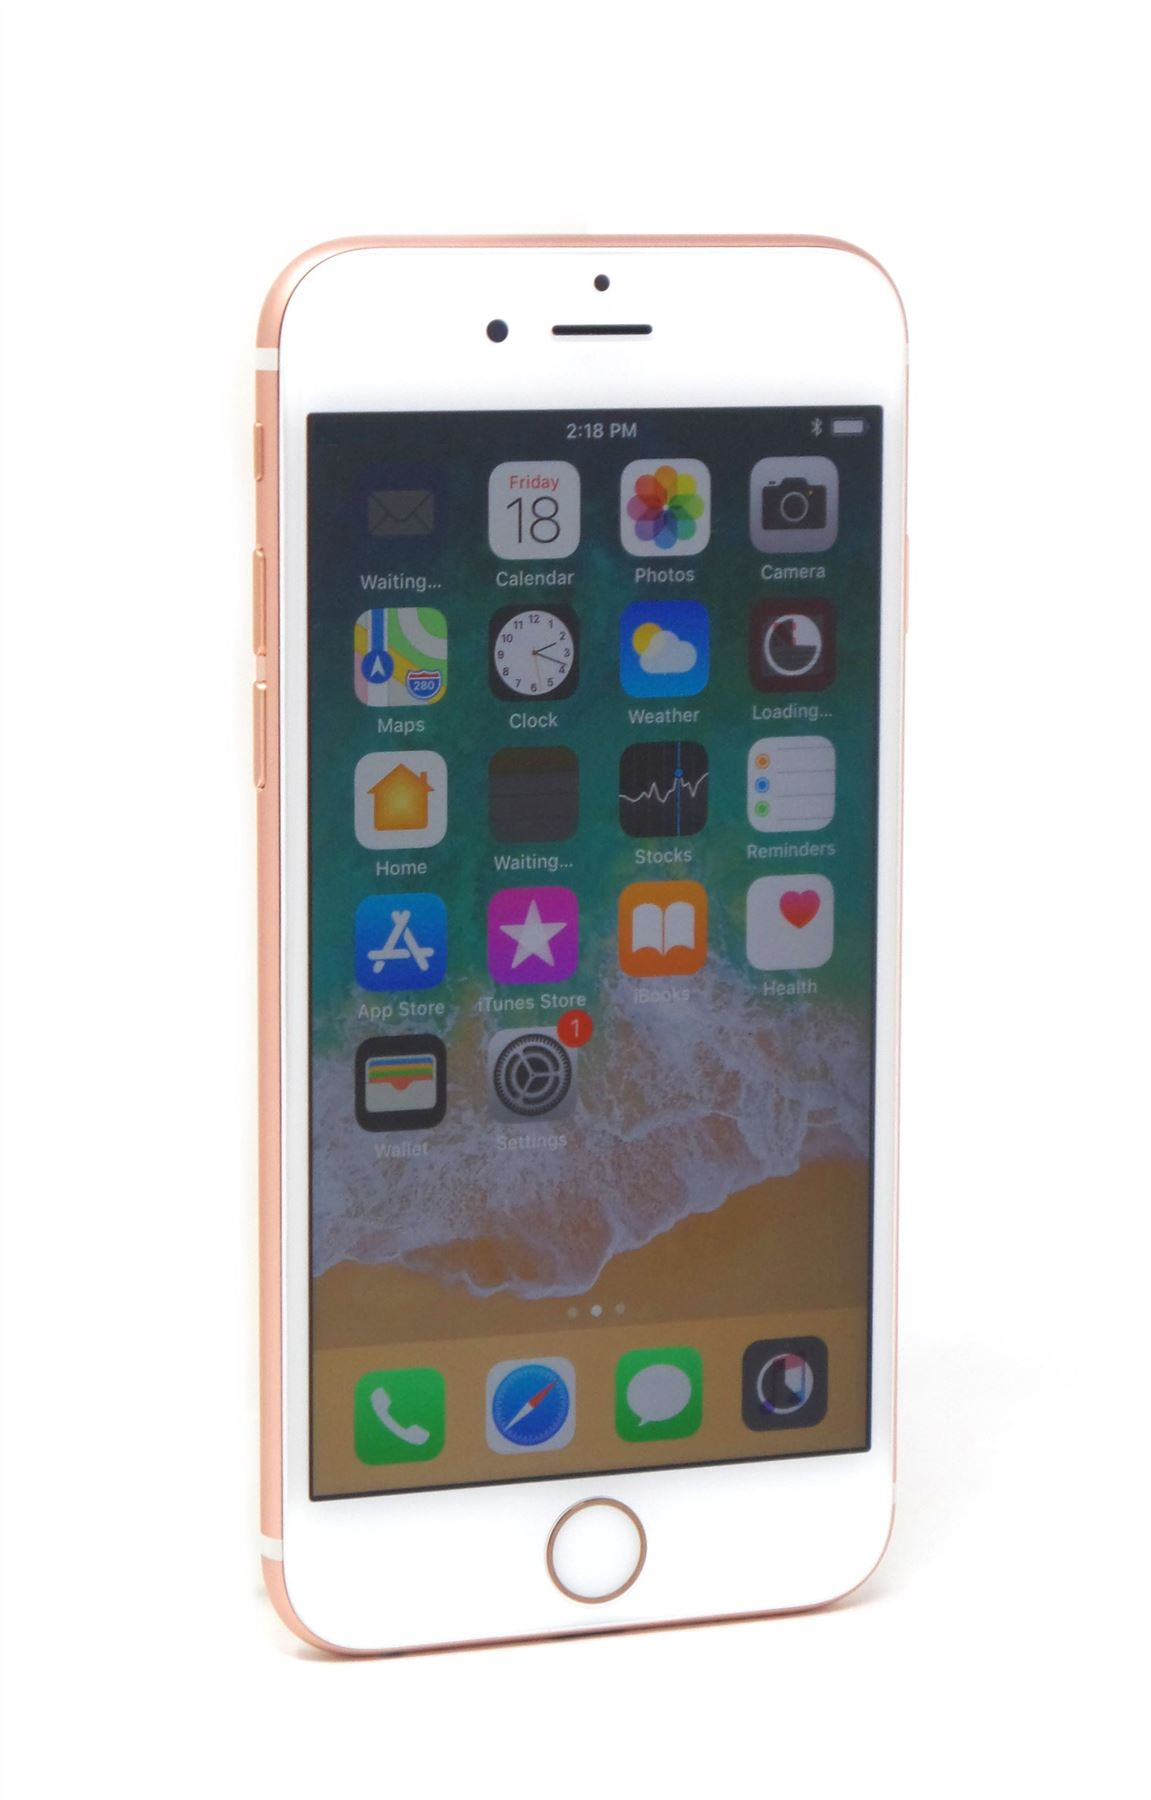 Apple-iPhone-6s-Carrier-Options-AT-amp-T-T-Mobile-Verizon-Unlocked-16-64-128GB-New thumbnail 16